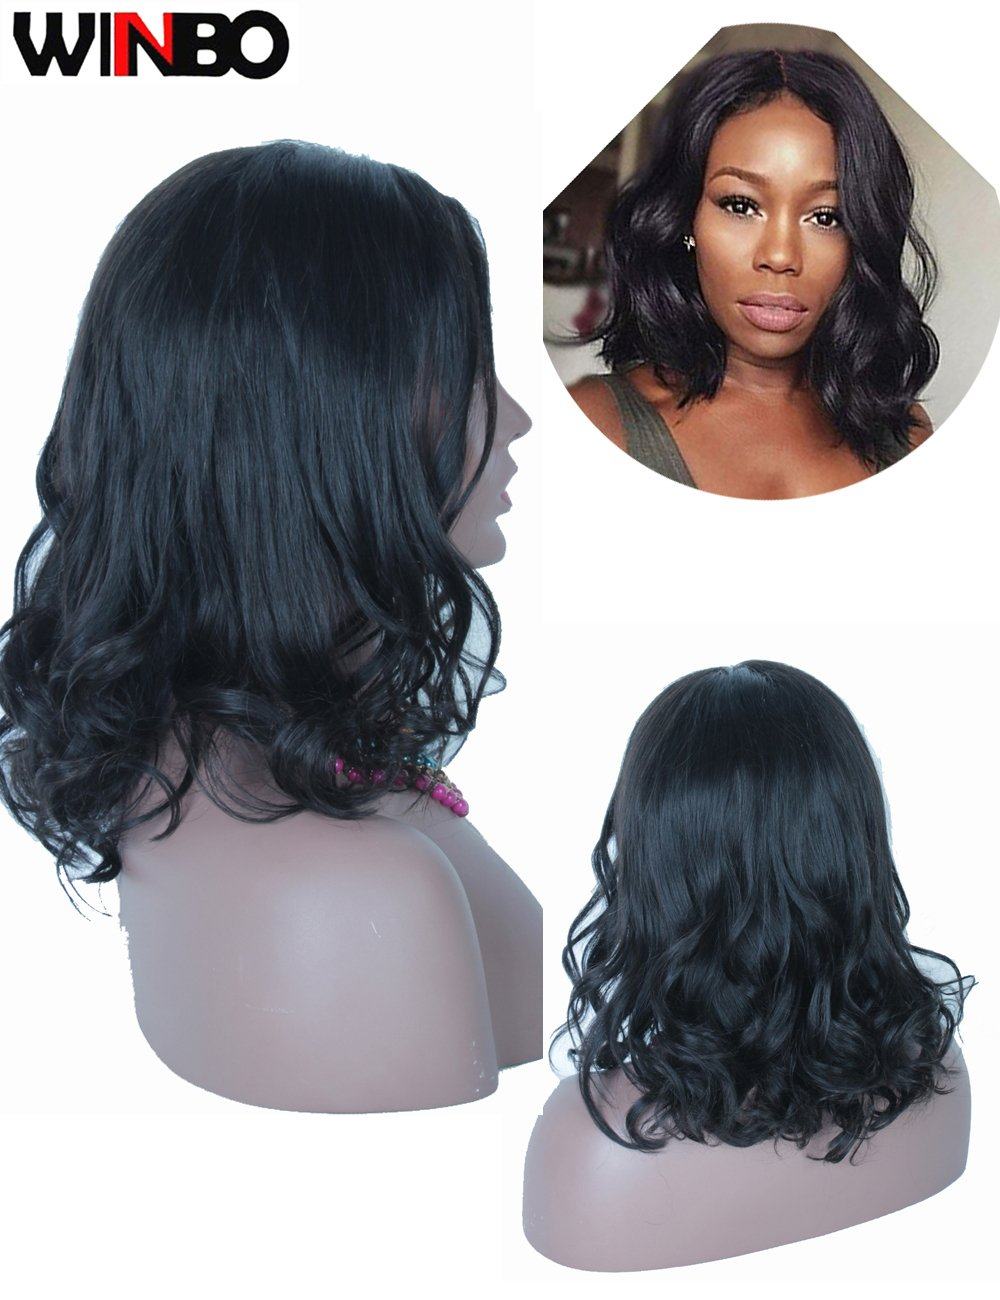 WINBO BOB Wavy Full Lace Front Wig 8A Brzilian Human Hair 150 Density 360 Lace Wig Baby Hair (12 INCH, 360 LACE WIG)